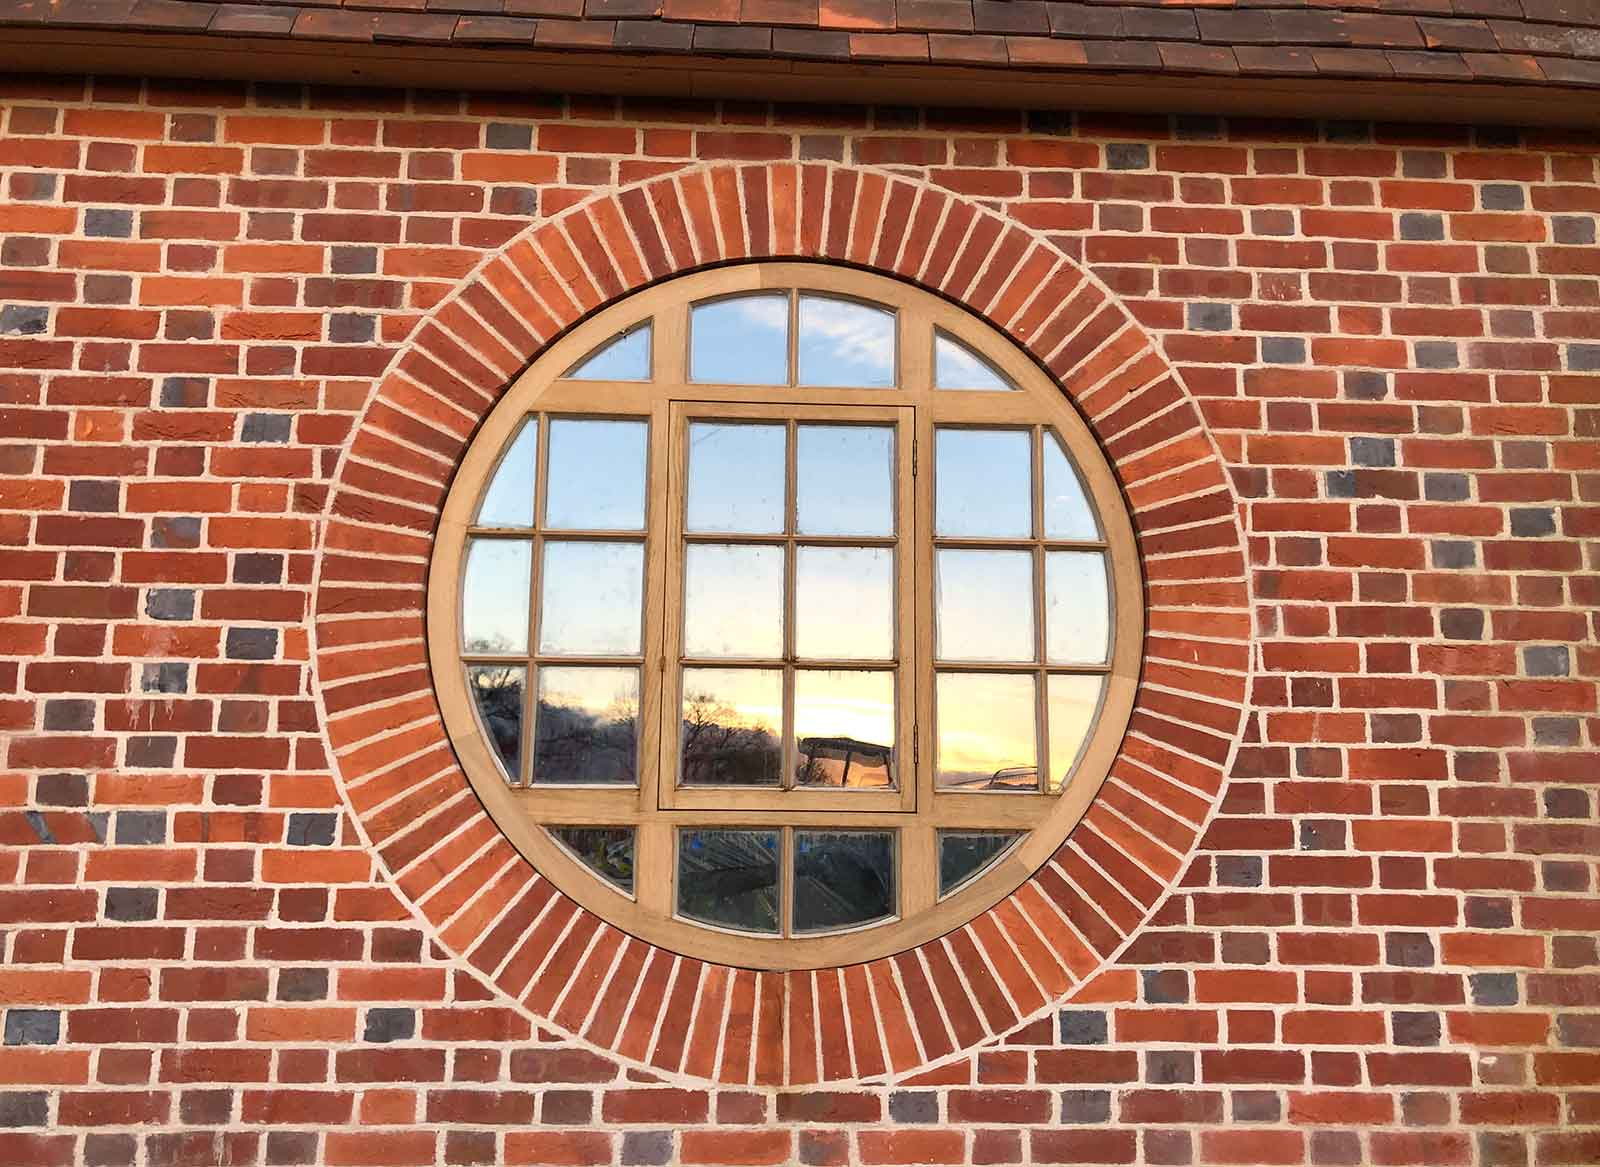 Bulls eye window